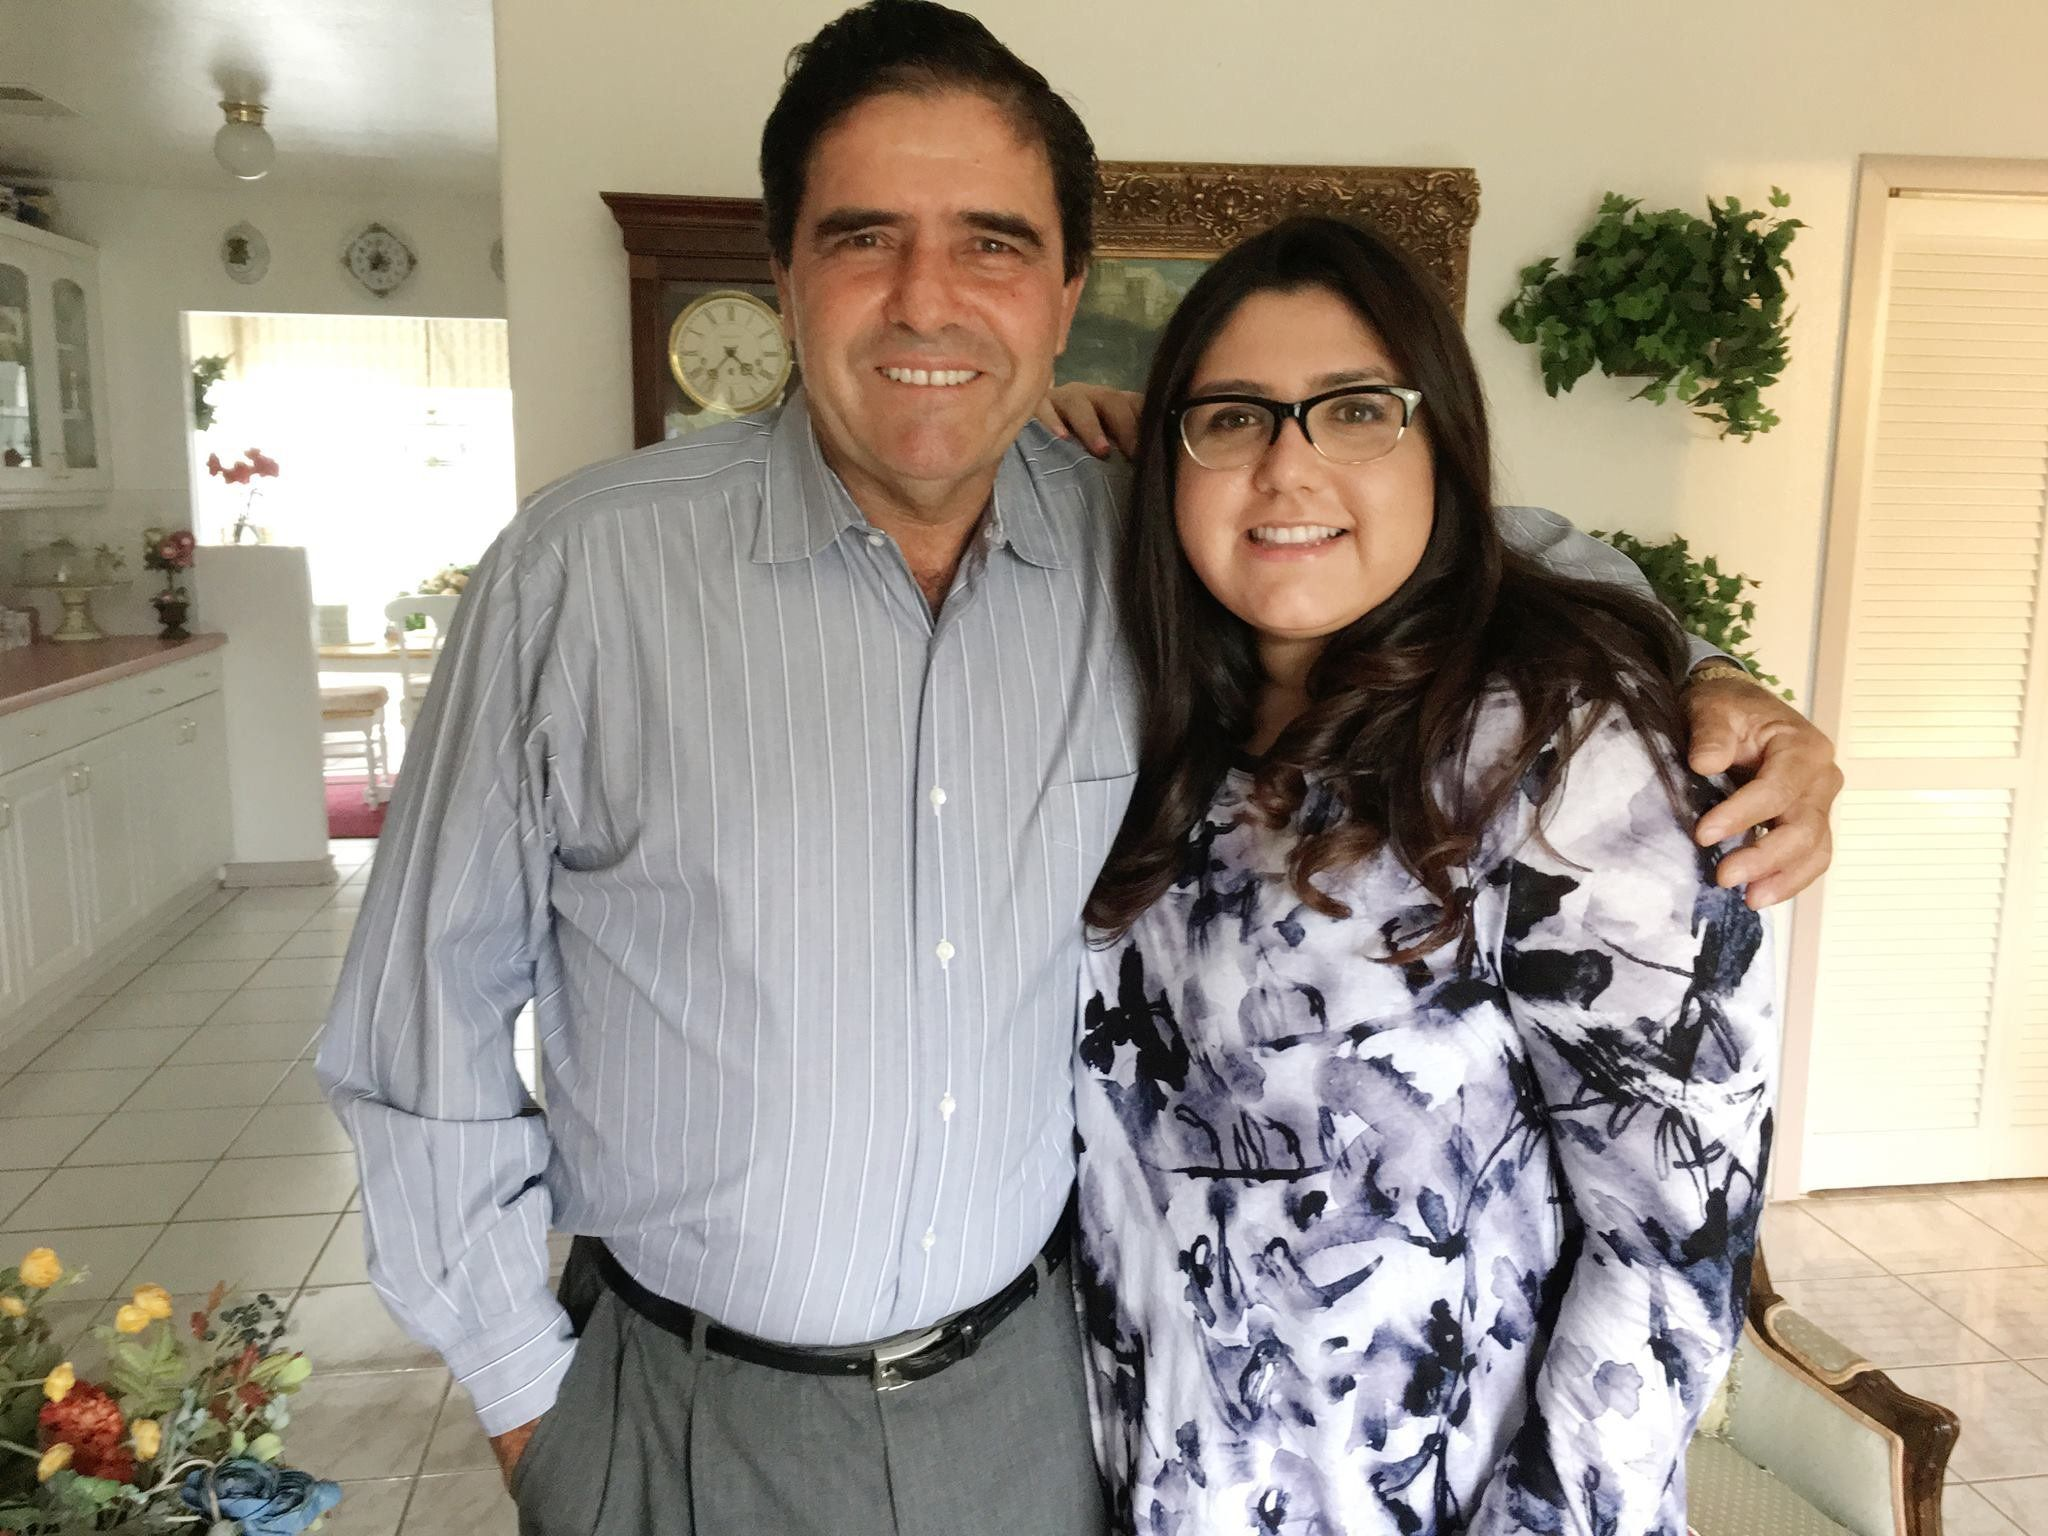 Perla Nation with her father, Pablo Perez.